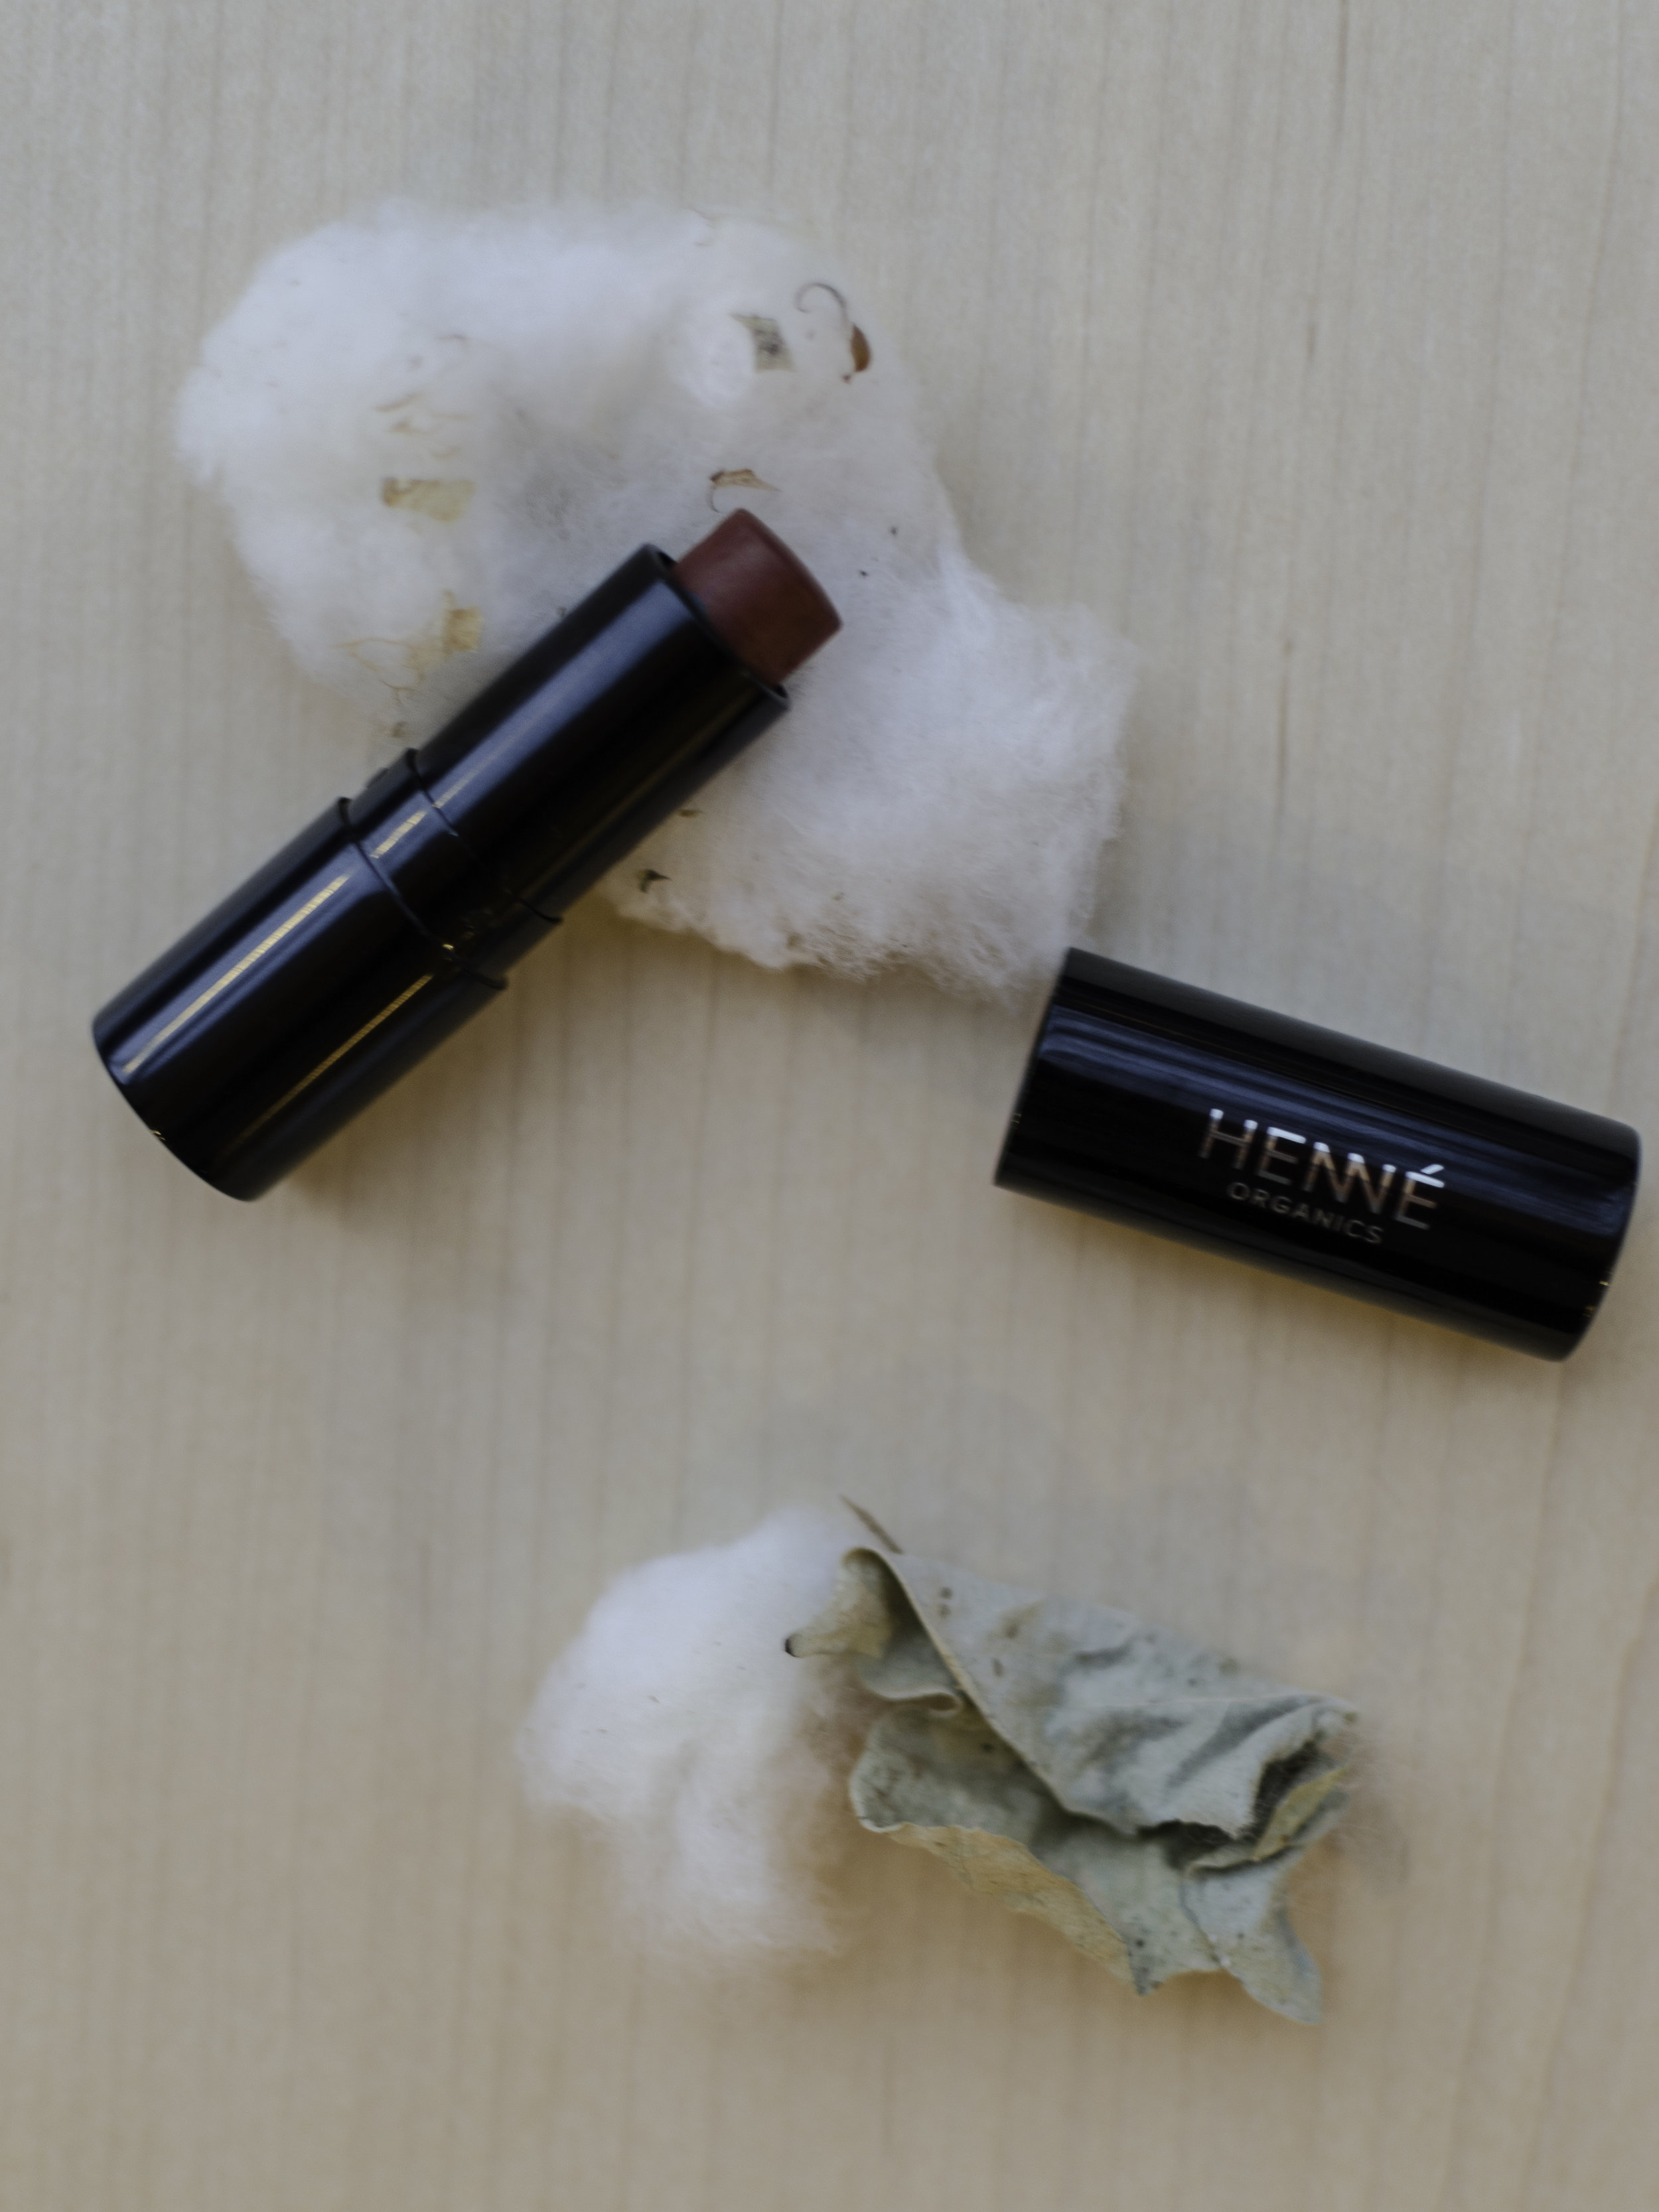 Henne OrganicsLuxury Lip Tints - These are the easiest gift for any female friends. They are all natural, super hydrating, and buildable color. It would be a sweet gift for a younger cousin all the way up to an older friend.